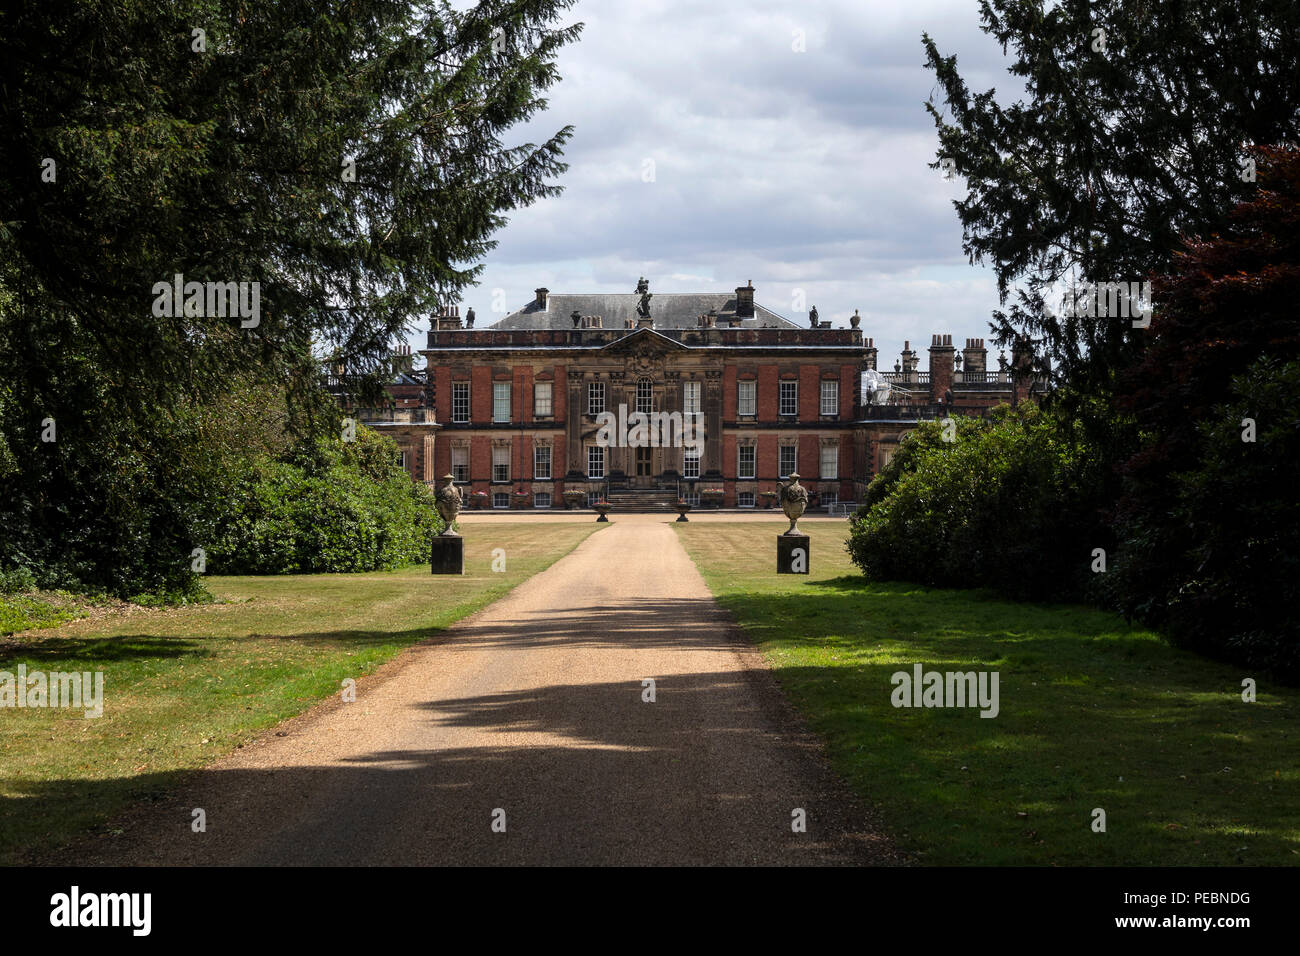 The West front of Wentworth Woodhouse, a Grade 1 listed country house near Rotherham, in South Yorkshire, UK Stock Photo